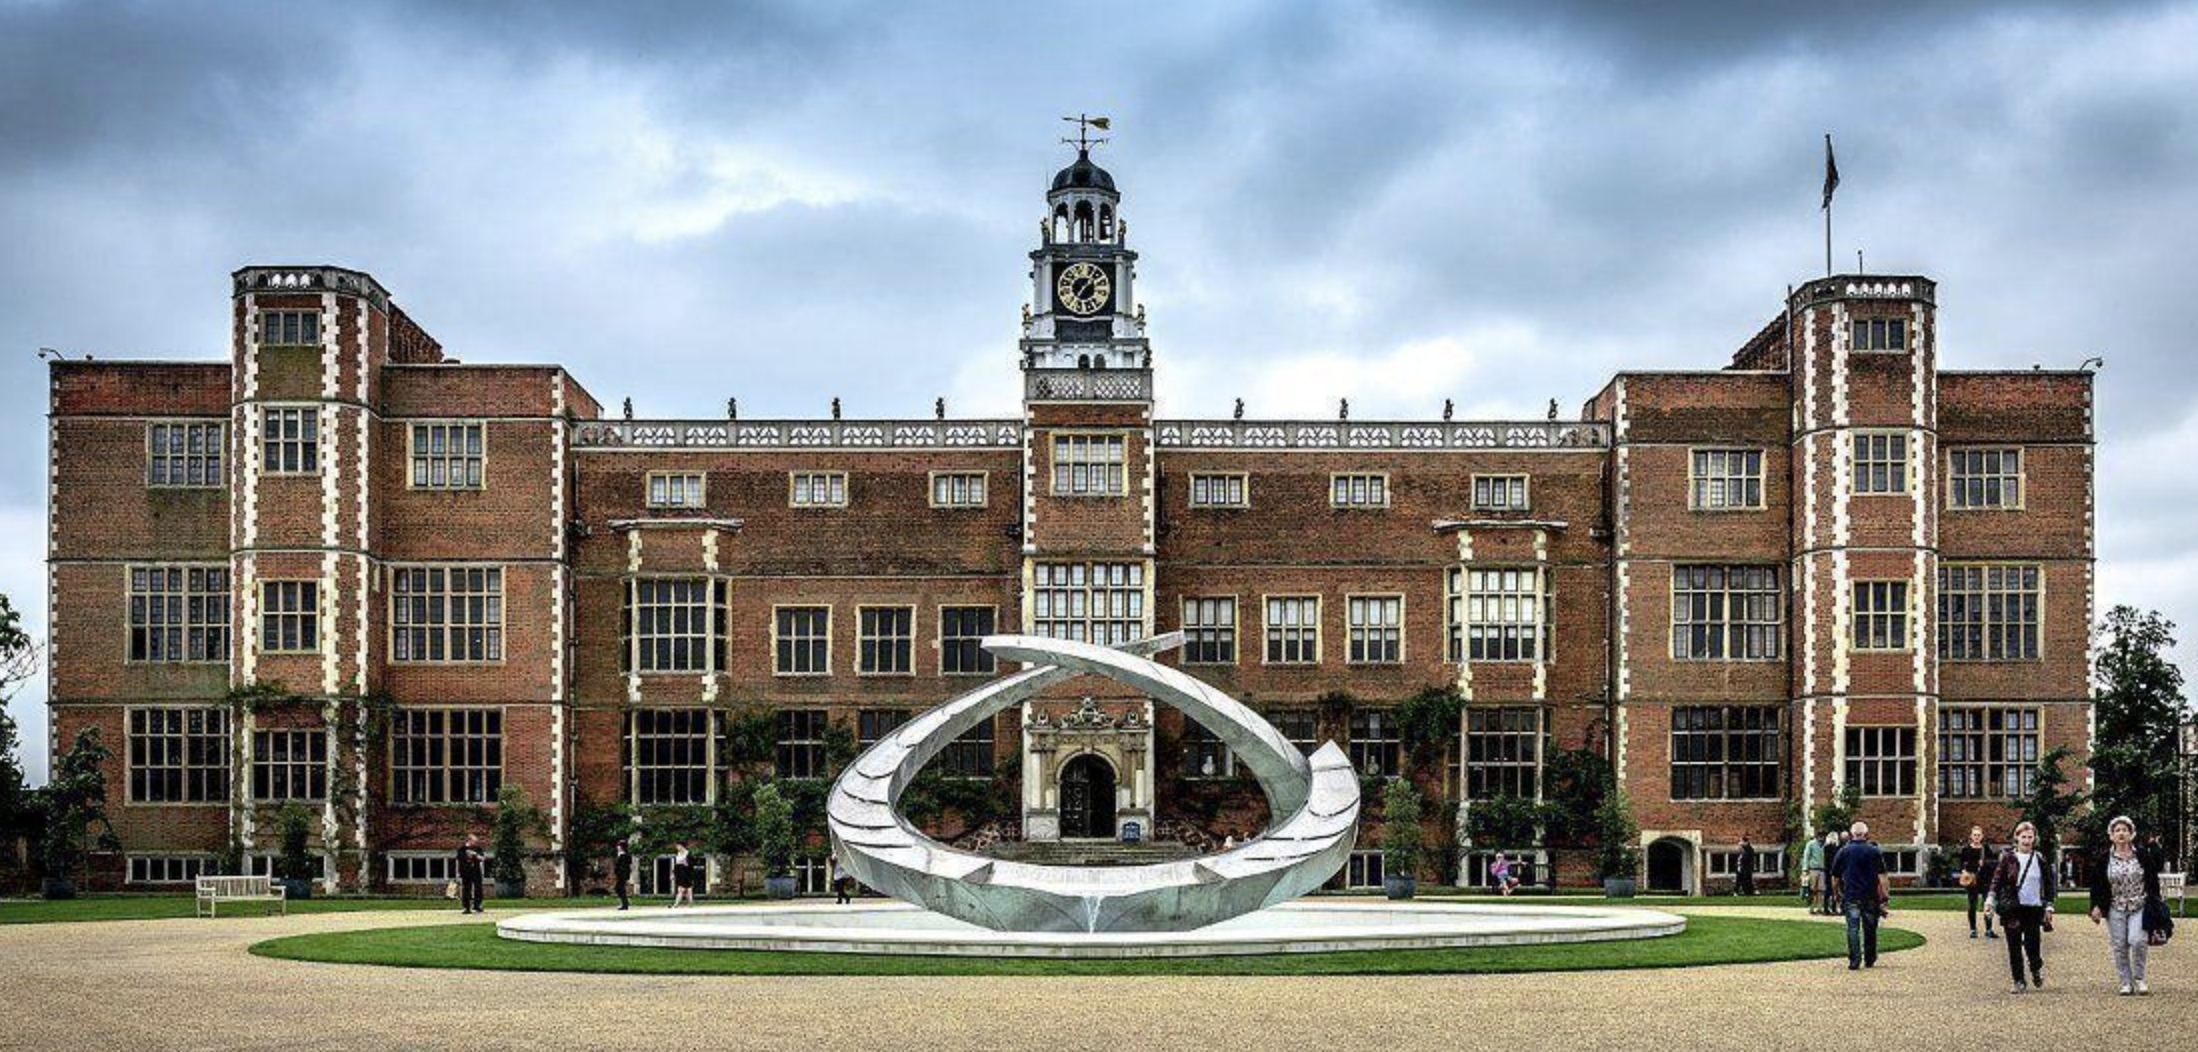 The rear facade of Hatfield House. Visitors enter through the door in the centre.